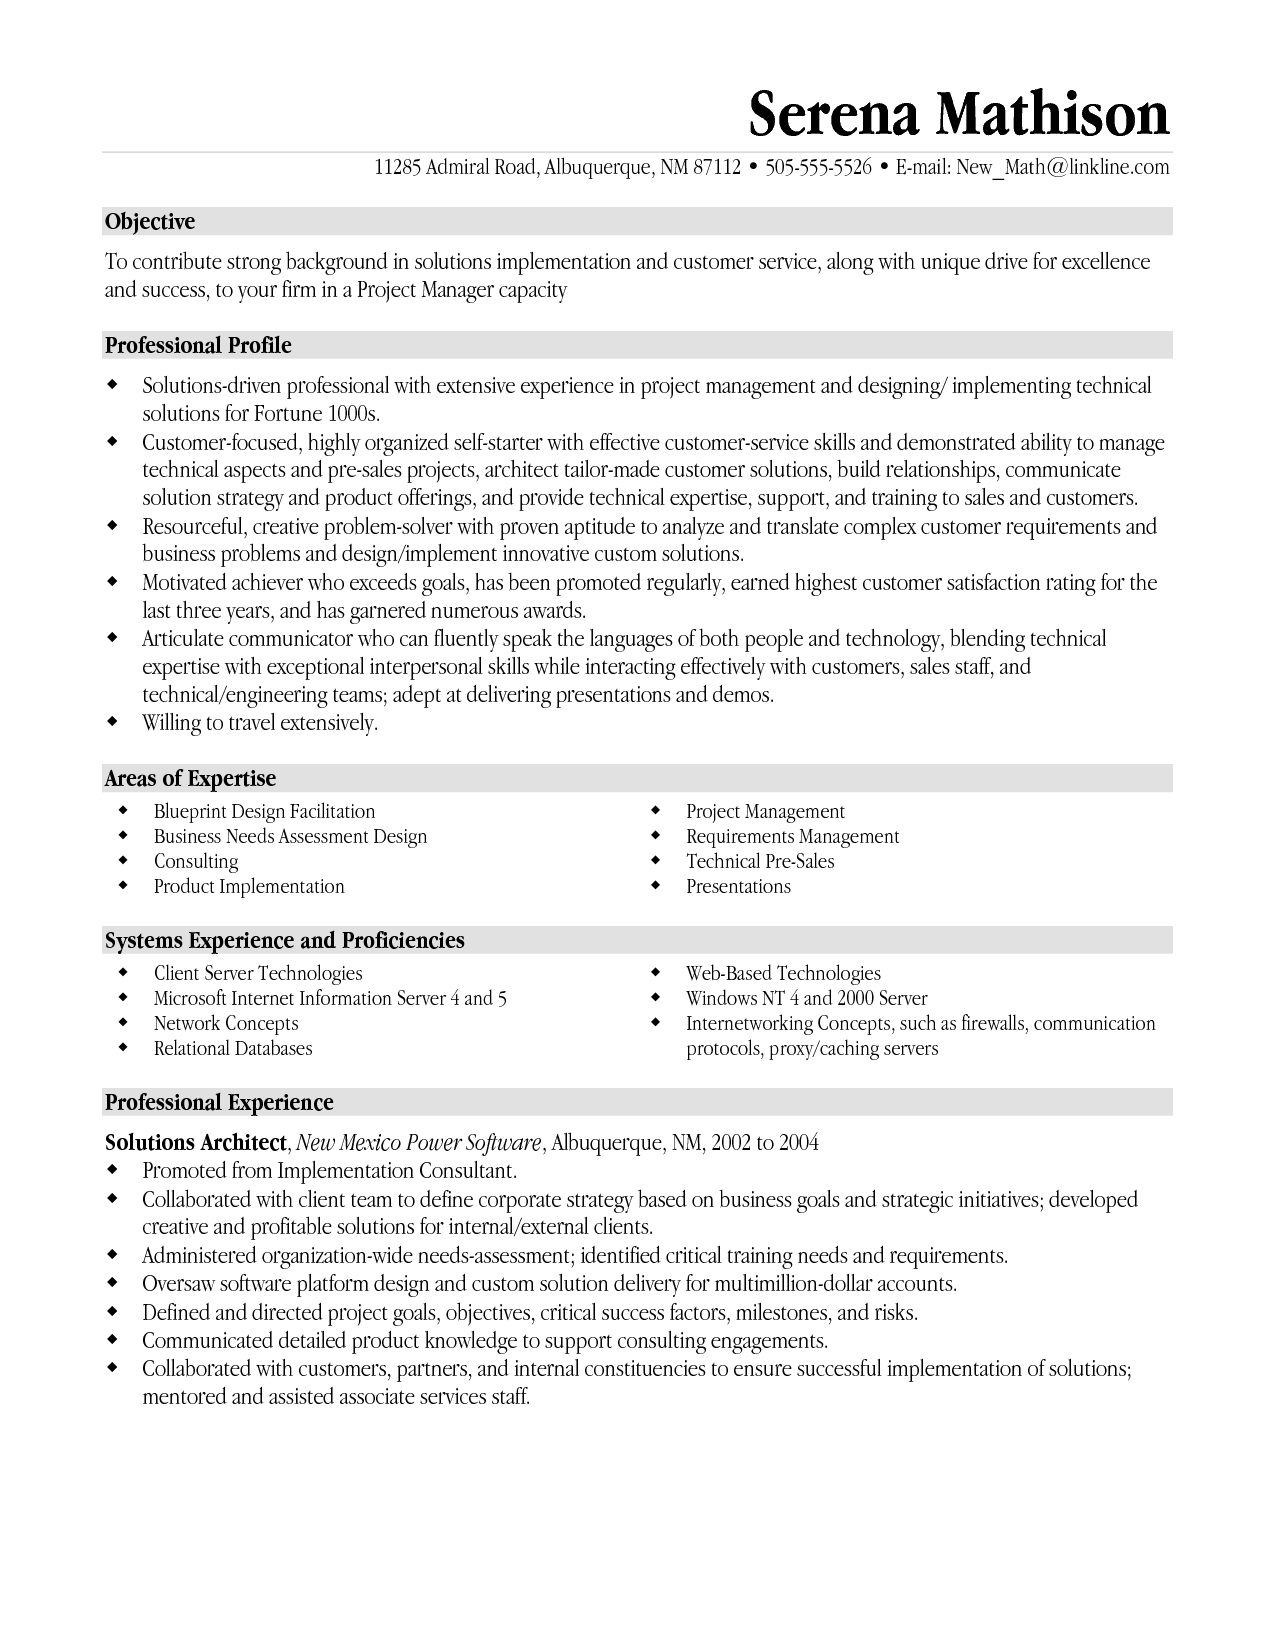 Resume Samples For Project Manager Project Management Resume Samples Free Project  Management Resume .